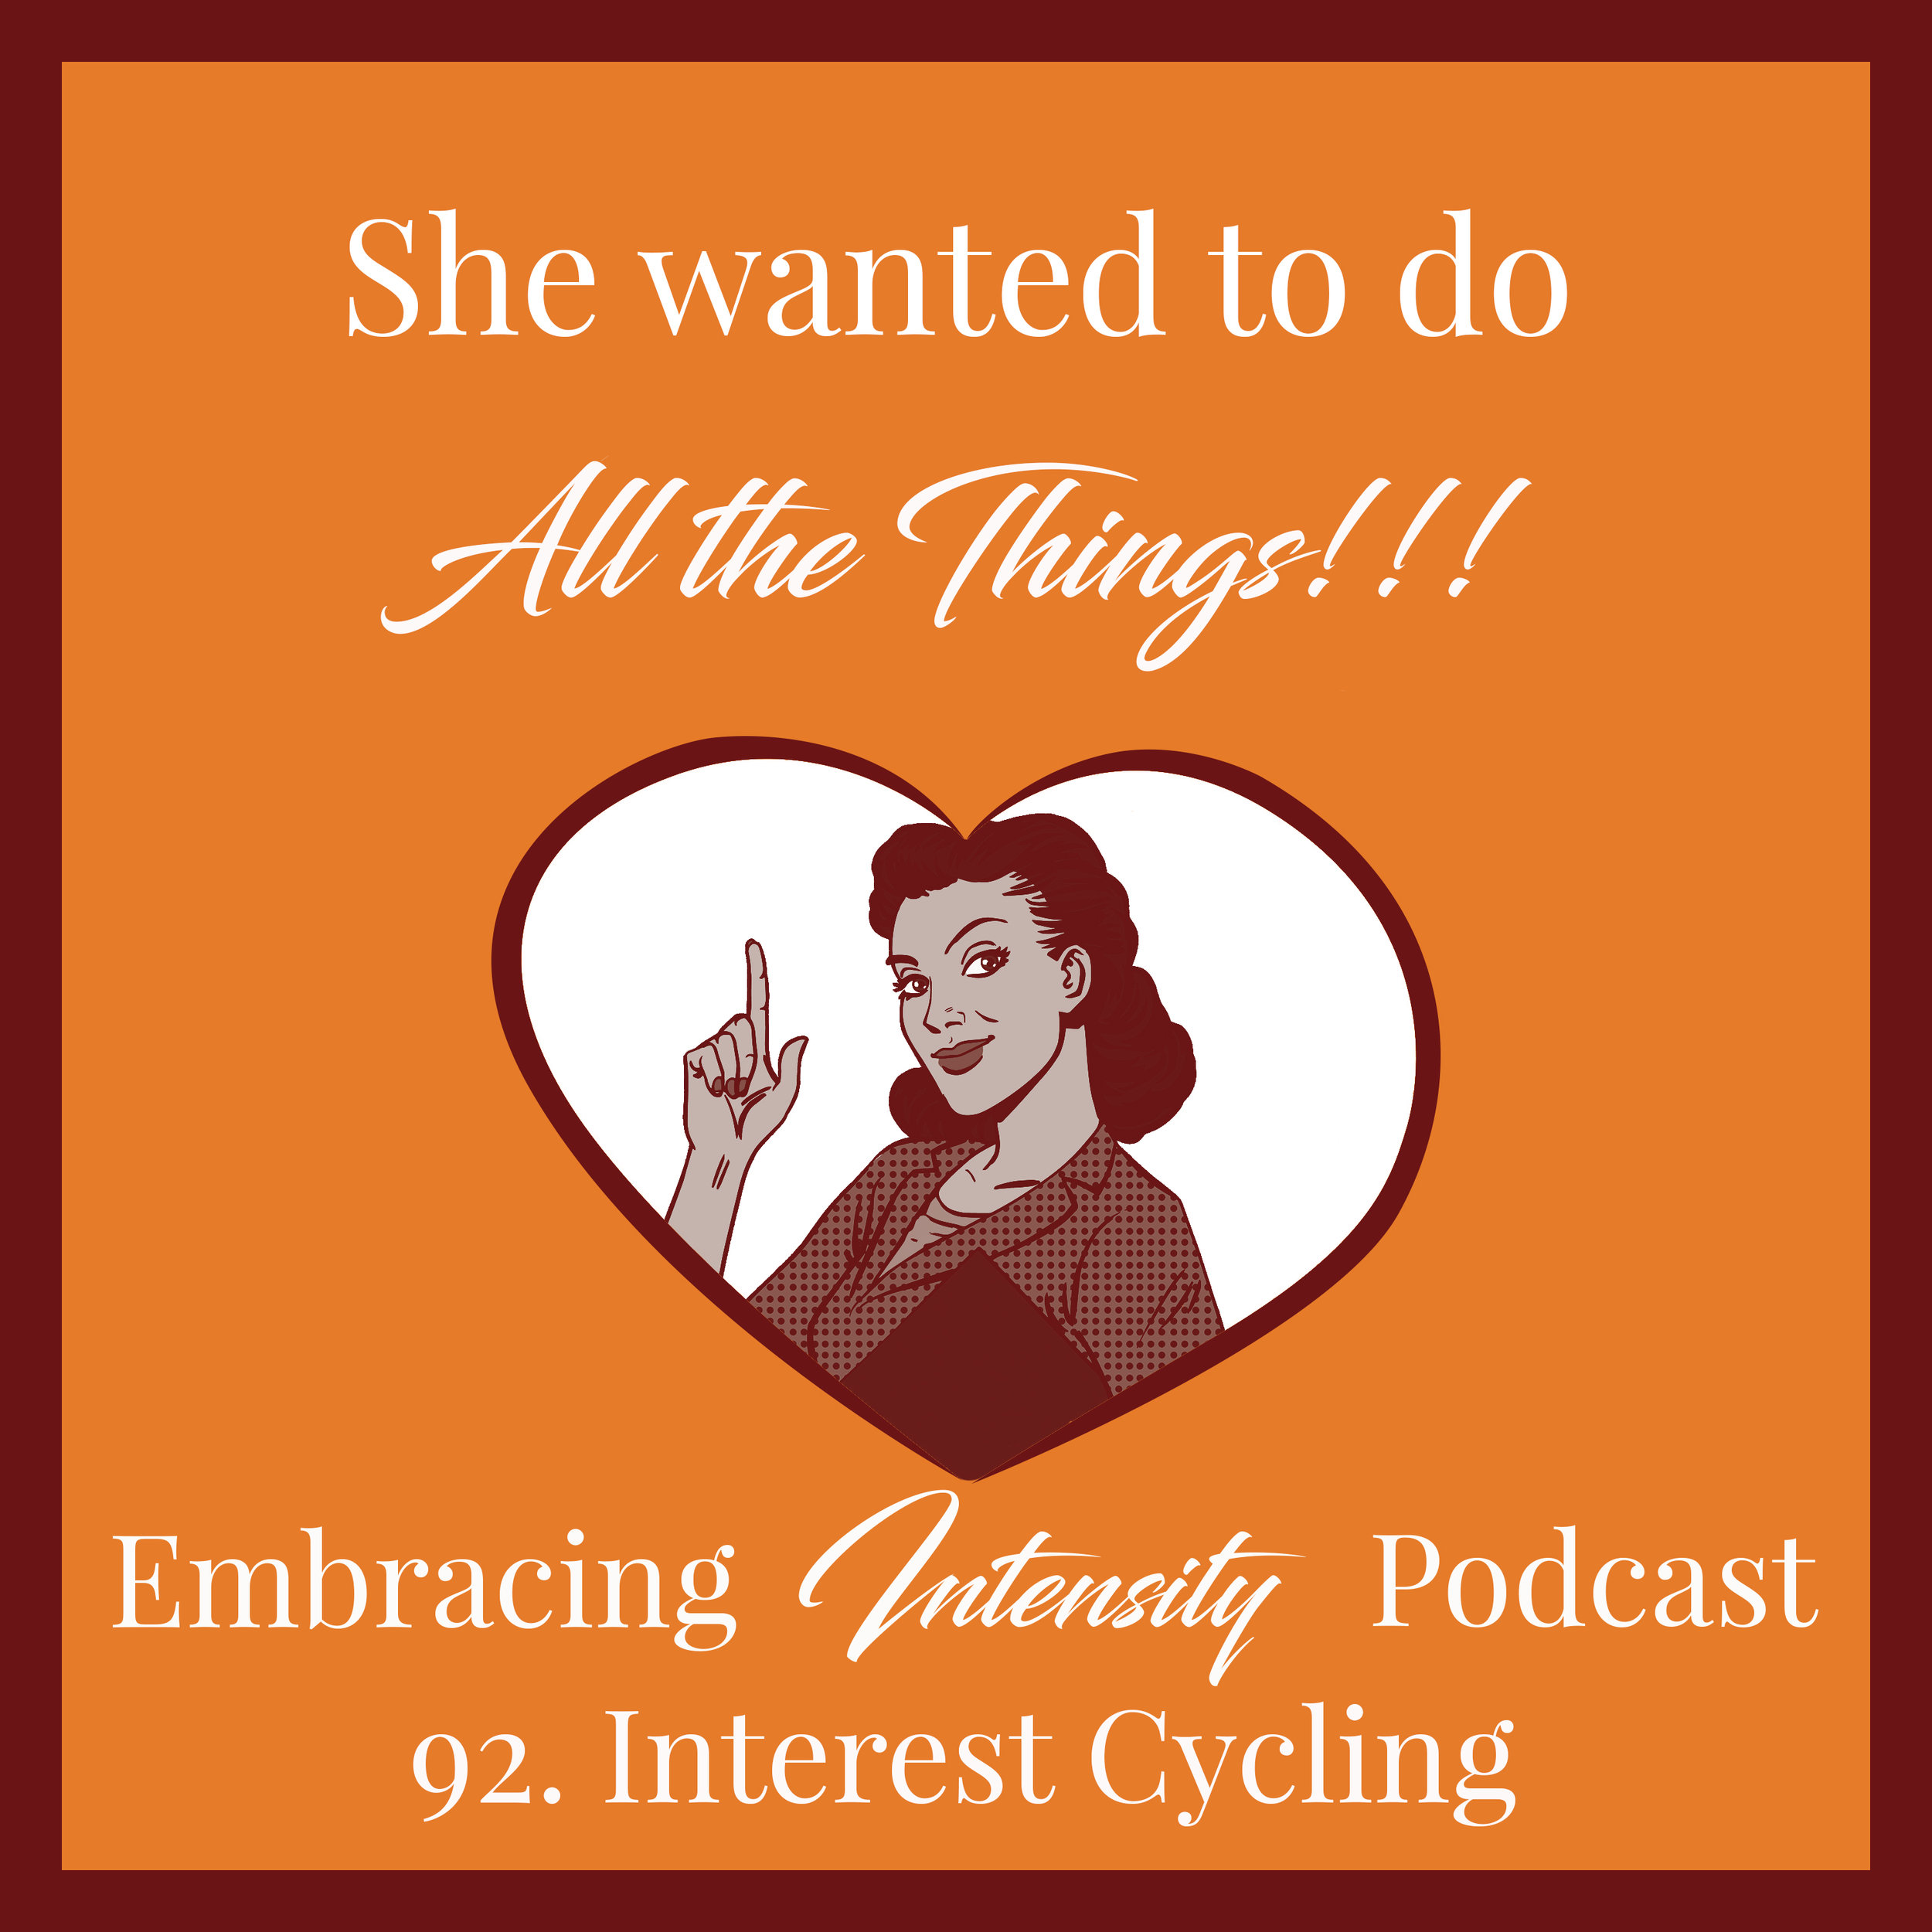 Interest Cycling - Embracing Intensity Podcast